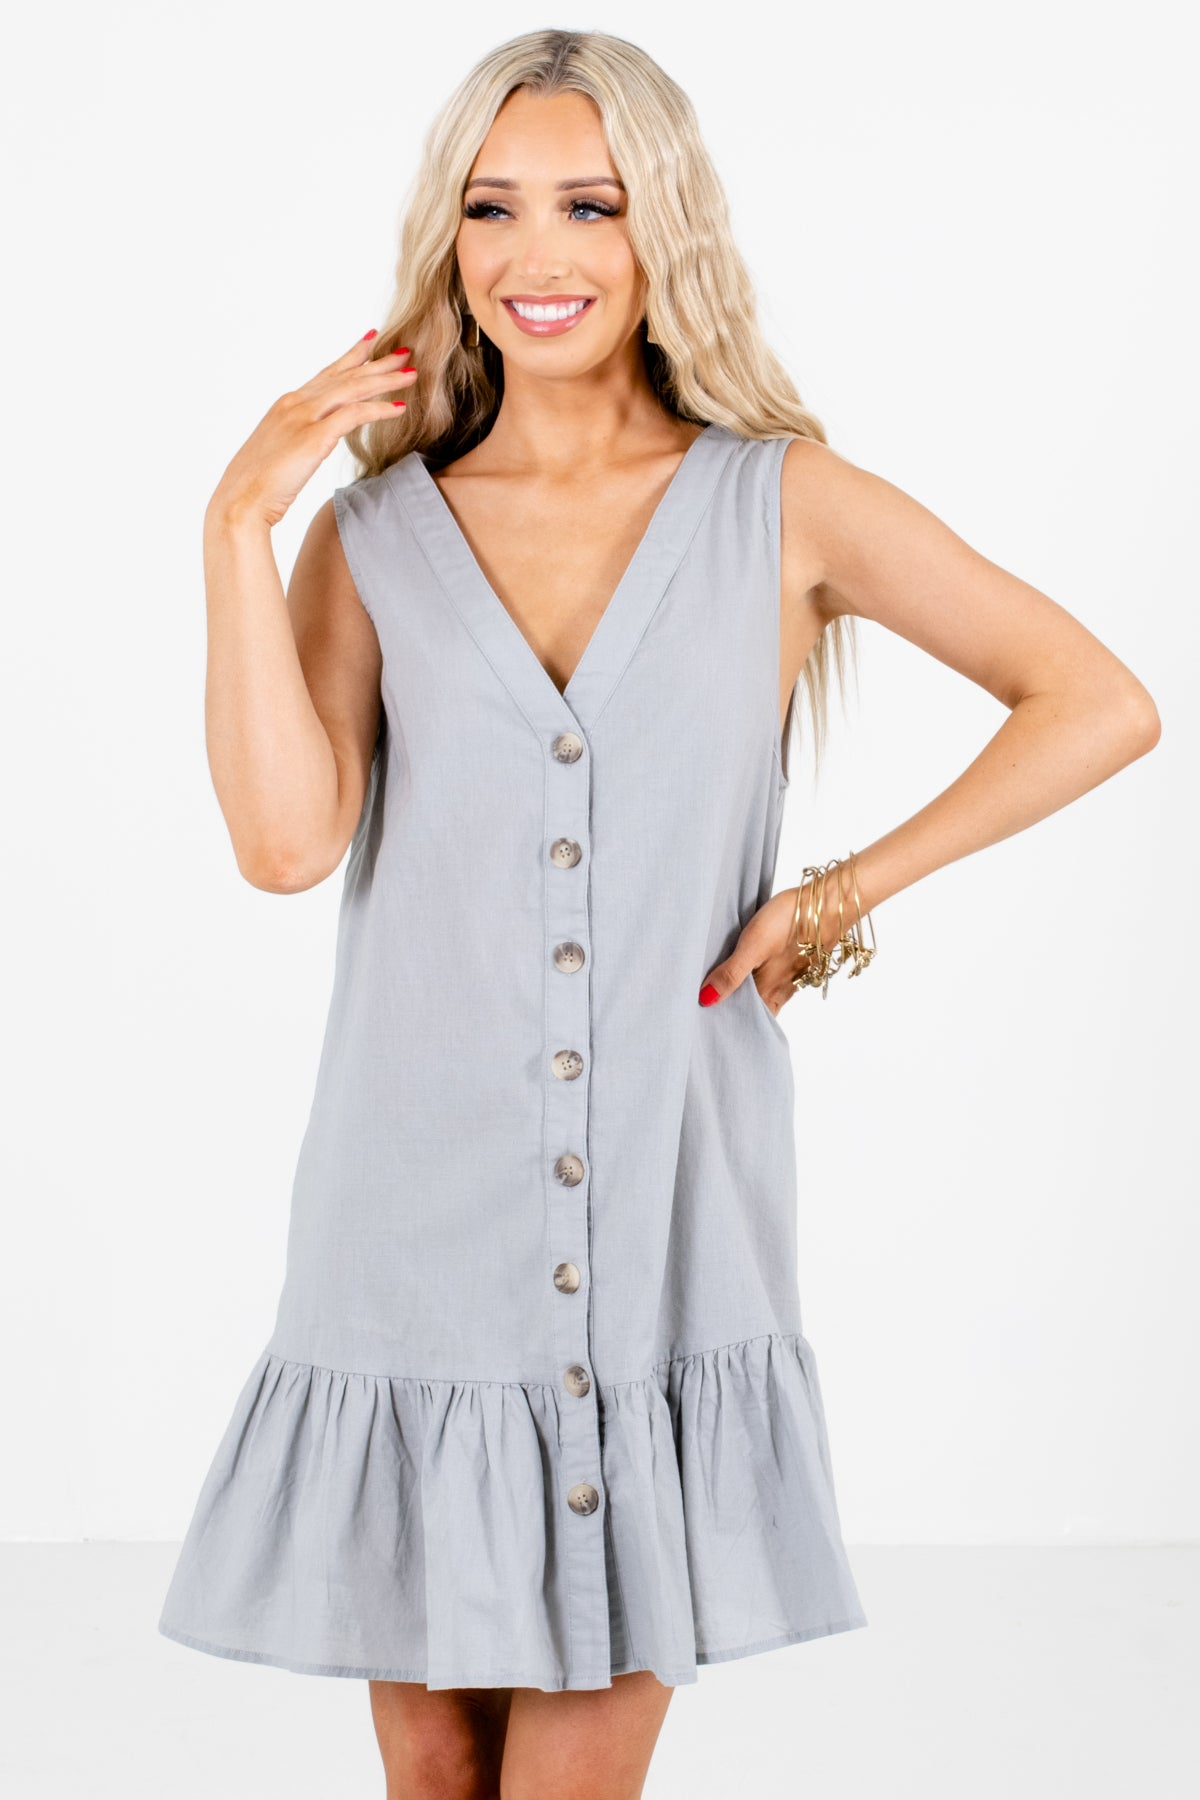 Green Button-Up Front Boutique Mini Dresses for Women